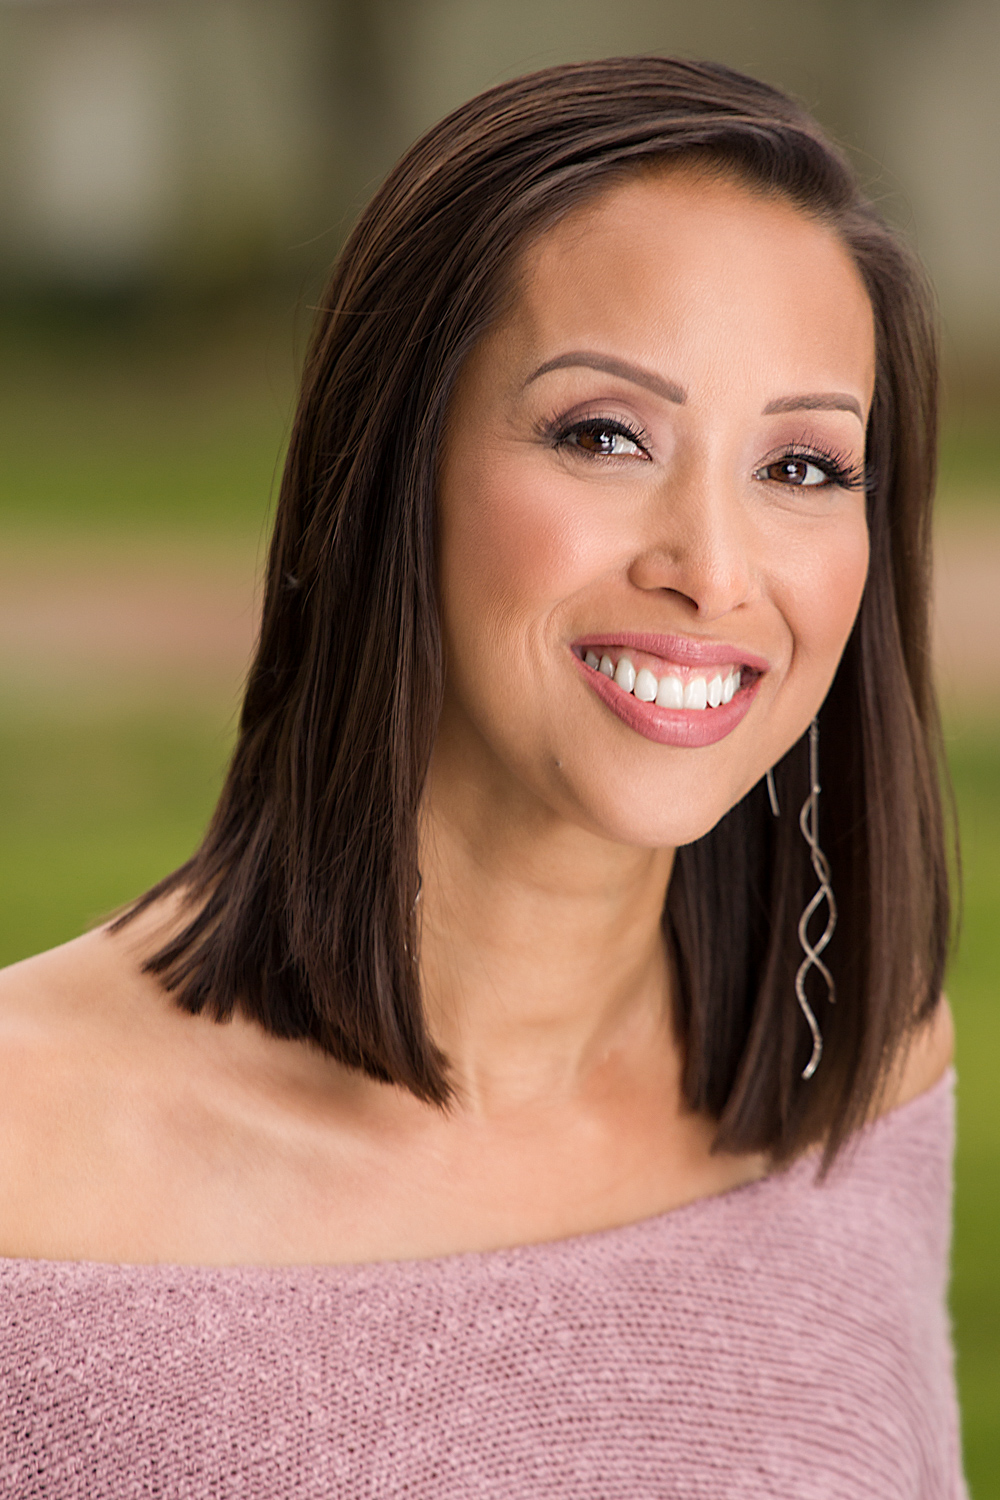 Miranda_LaRee_Headshots_Websize_02.jpg